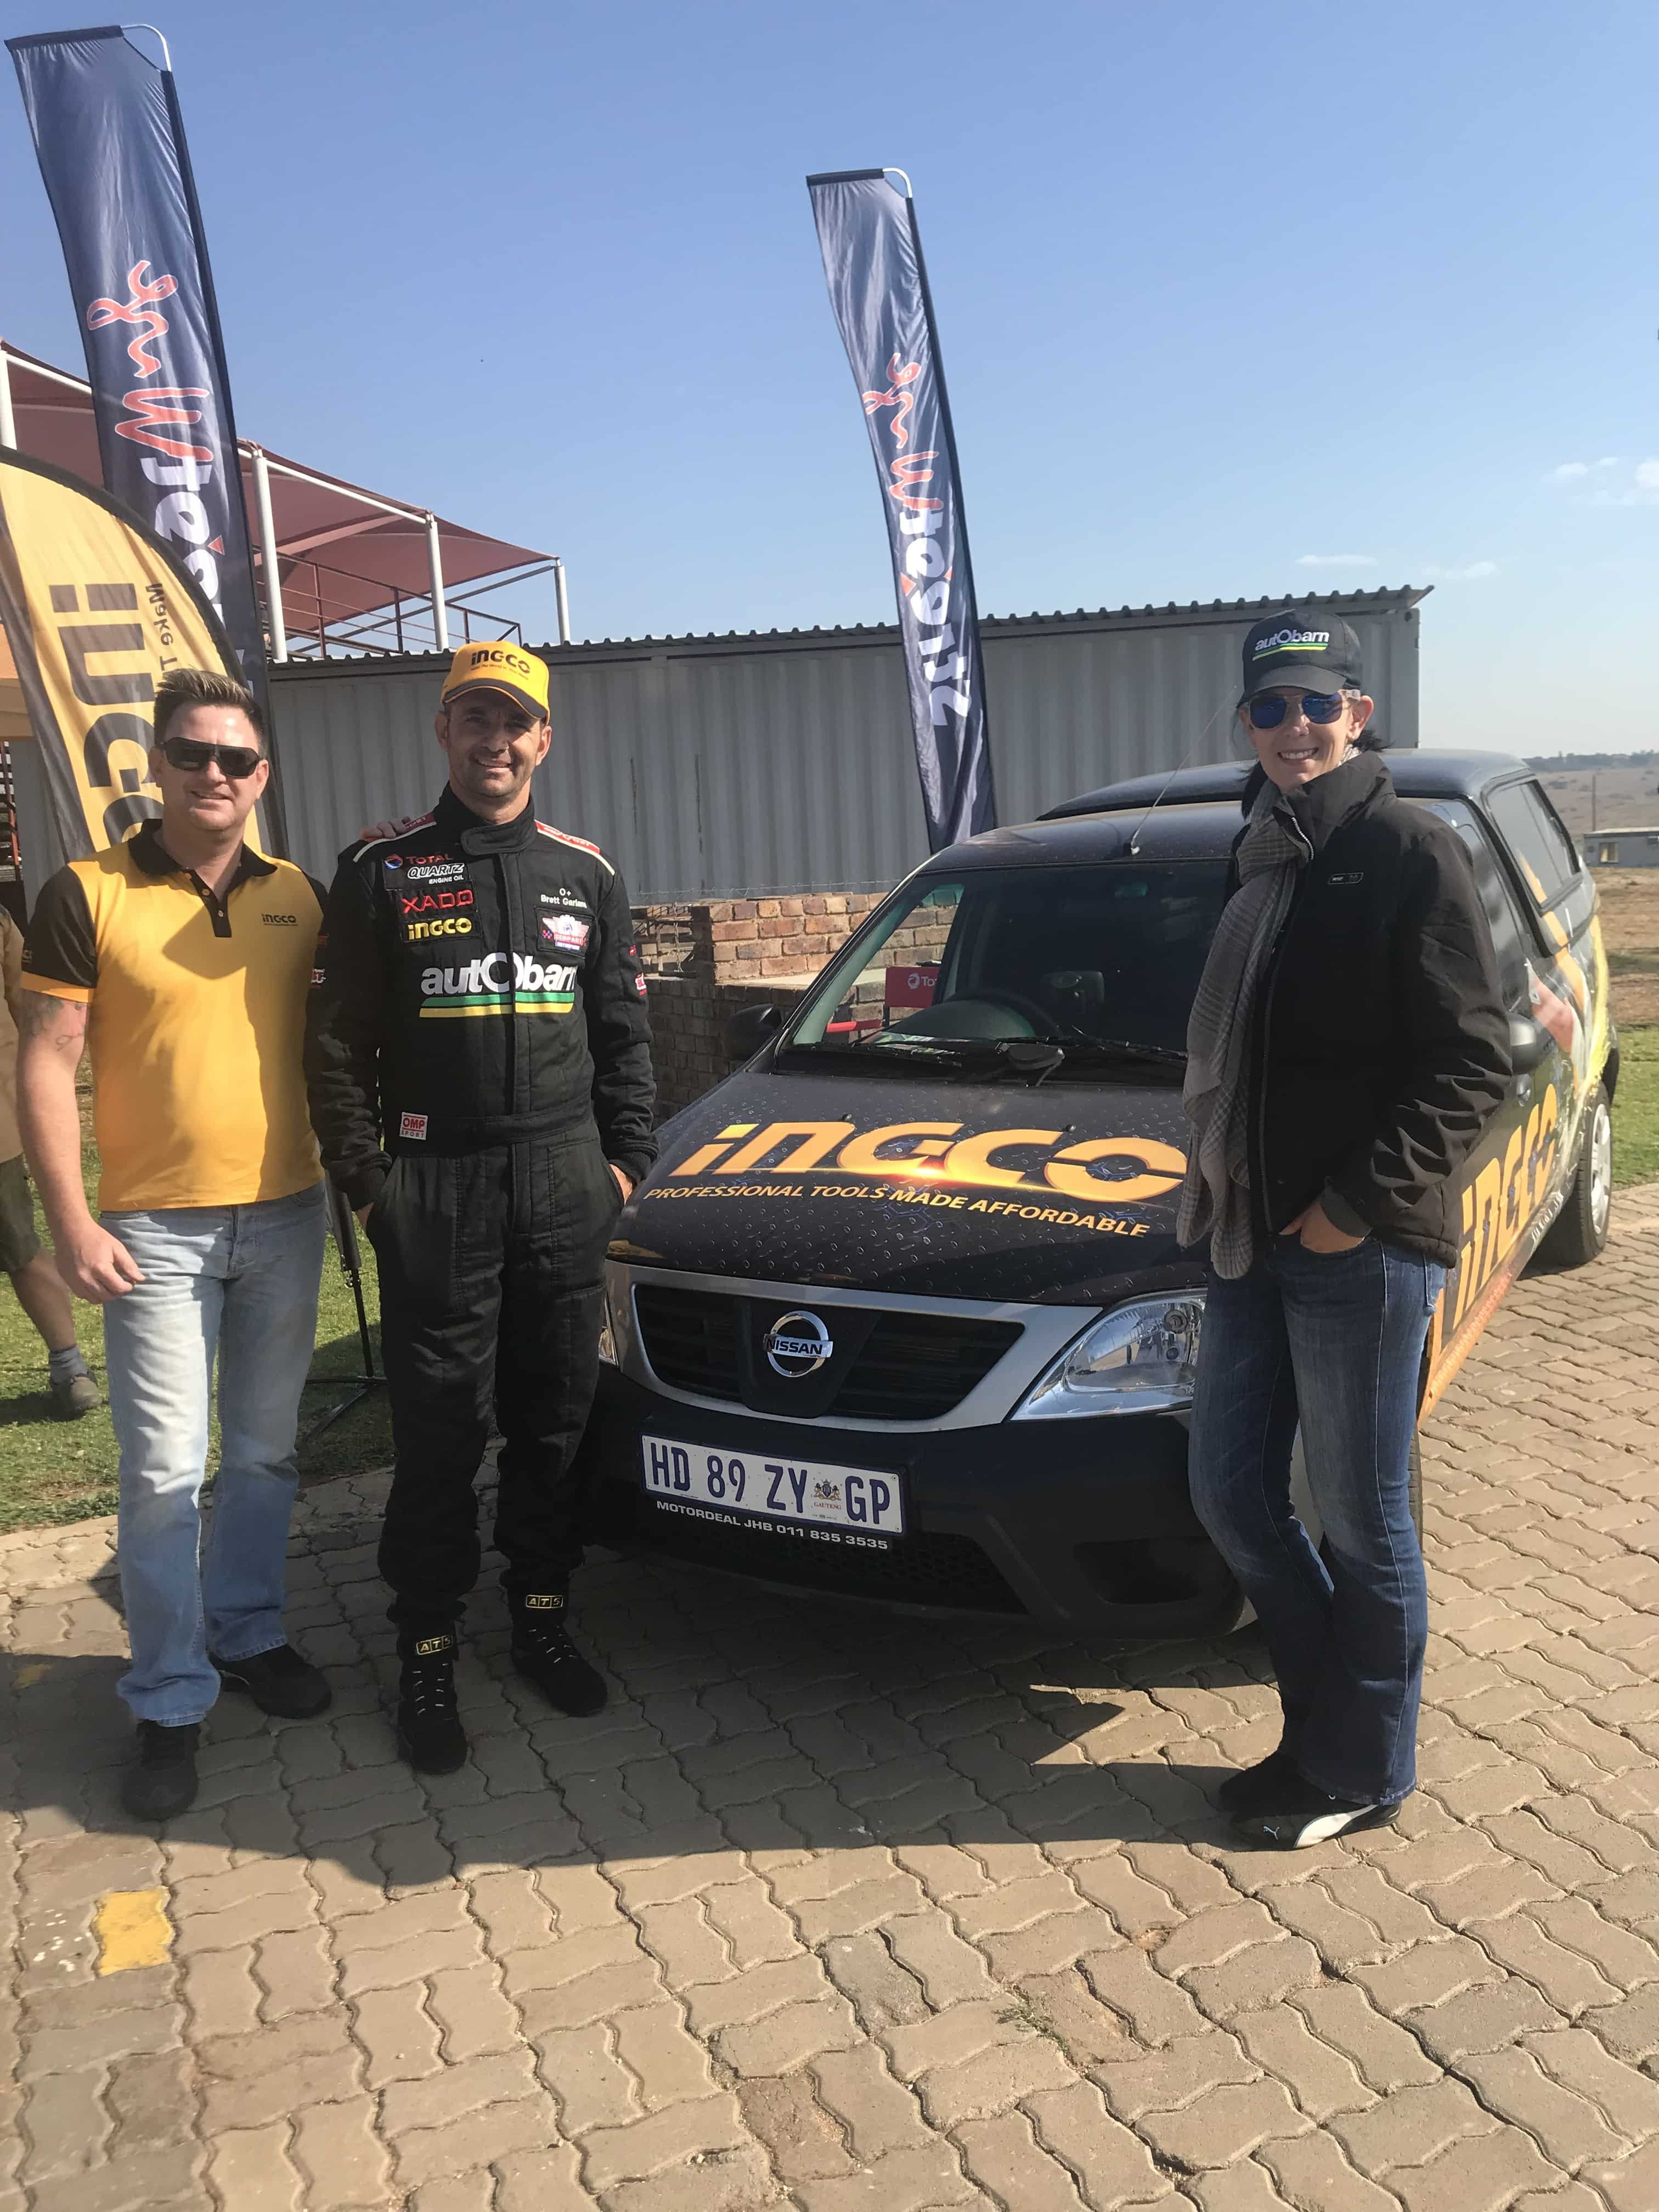 Ingco partner with SuperHatch race driver - DIY Trade News